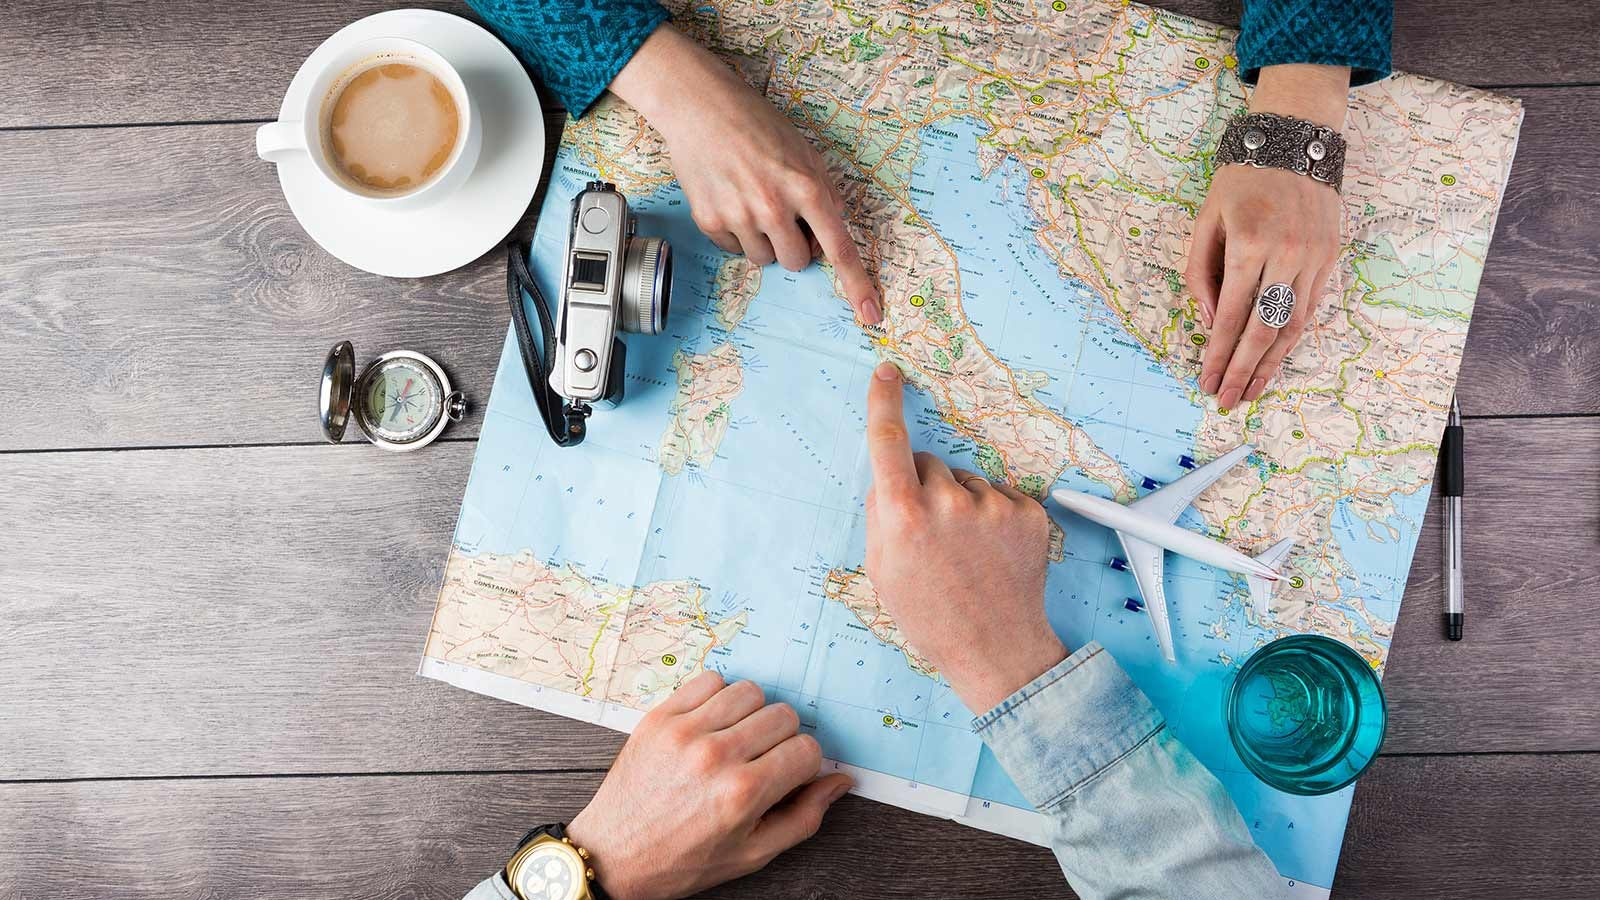 A couple planning a trip using a paper map.